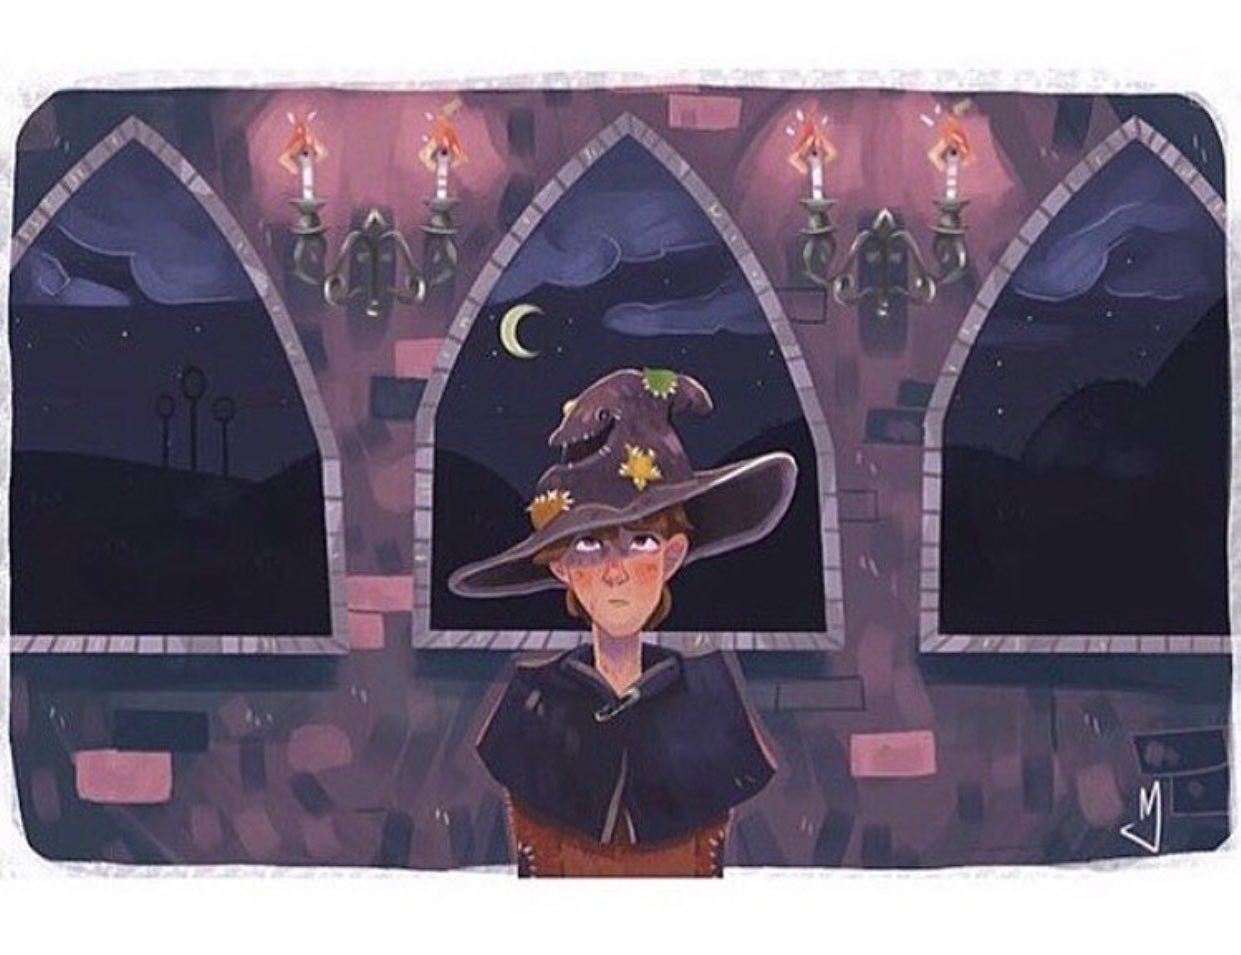 Happy birthday to the only Marauder with any common sense!!